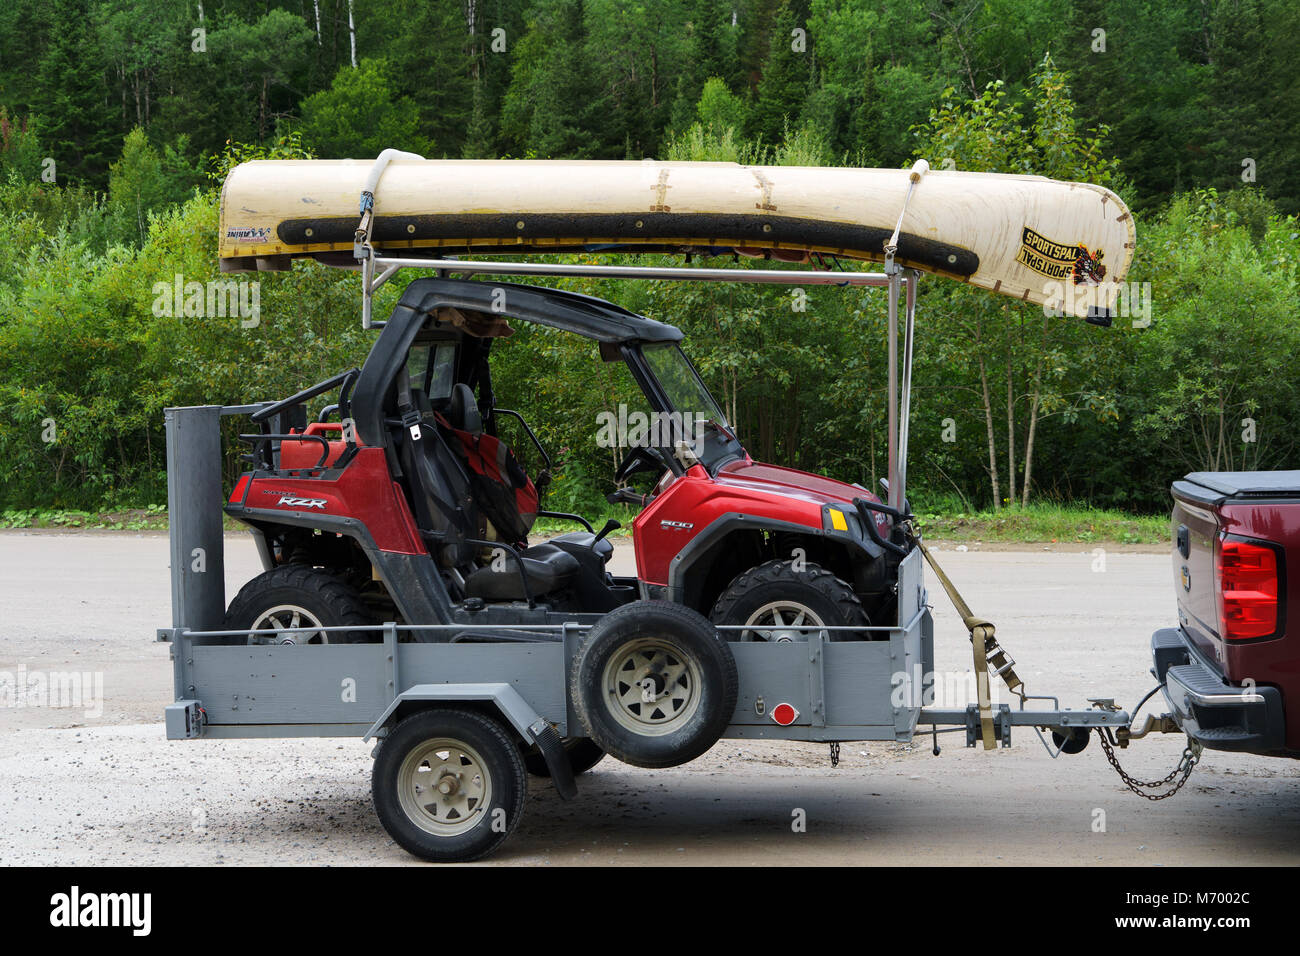 Small offroad vehicle and canoe on a trailer, Canada. - Stock Image